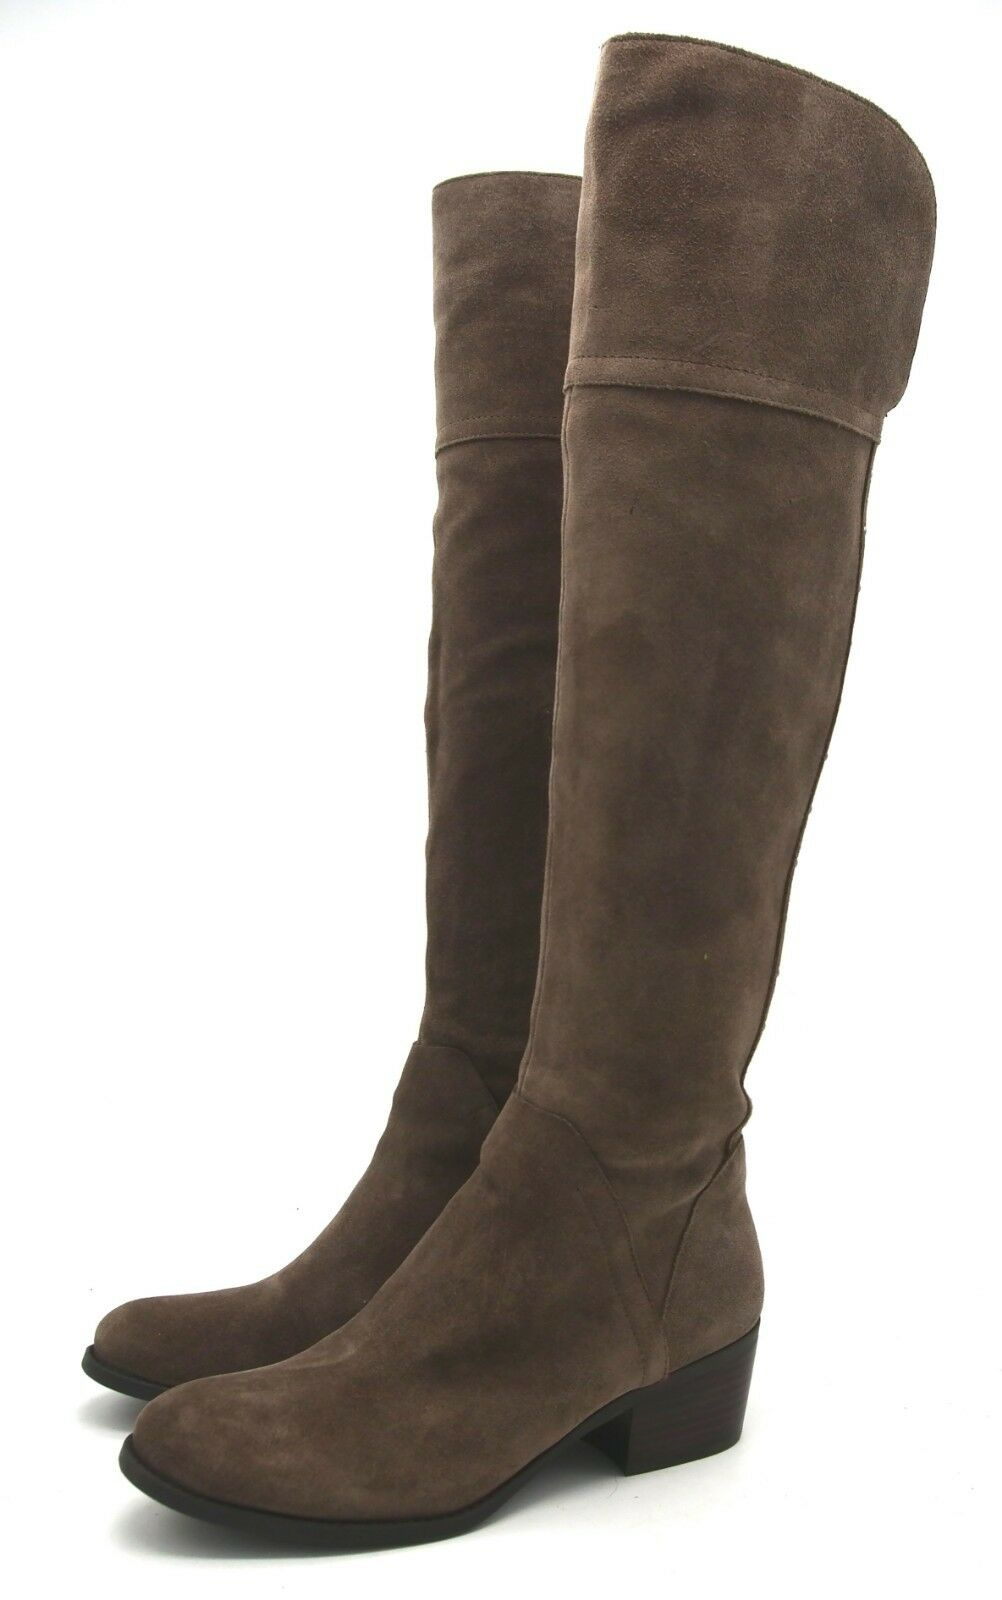 J6430 Womens Vince Camuto Briella Midnight Taupe Suede Leather Boot 9 M